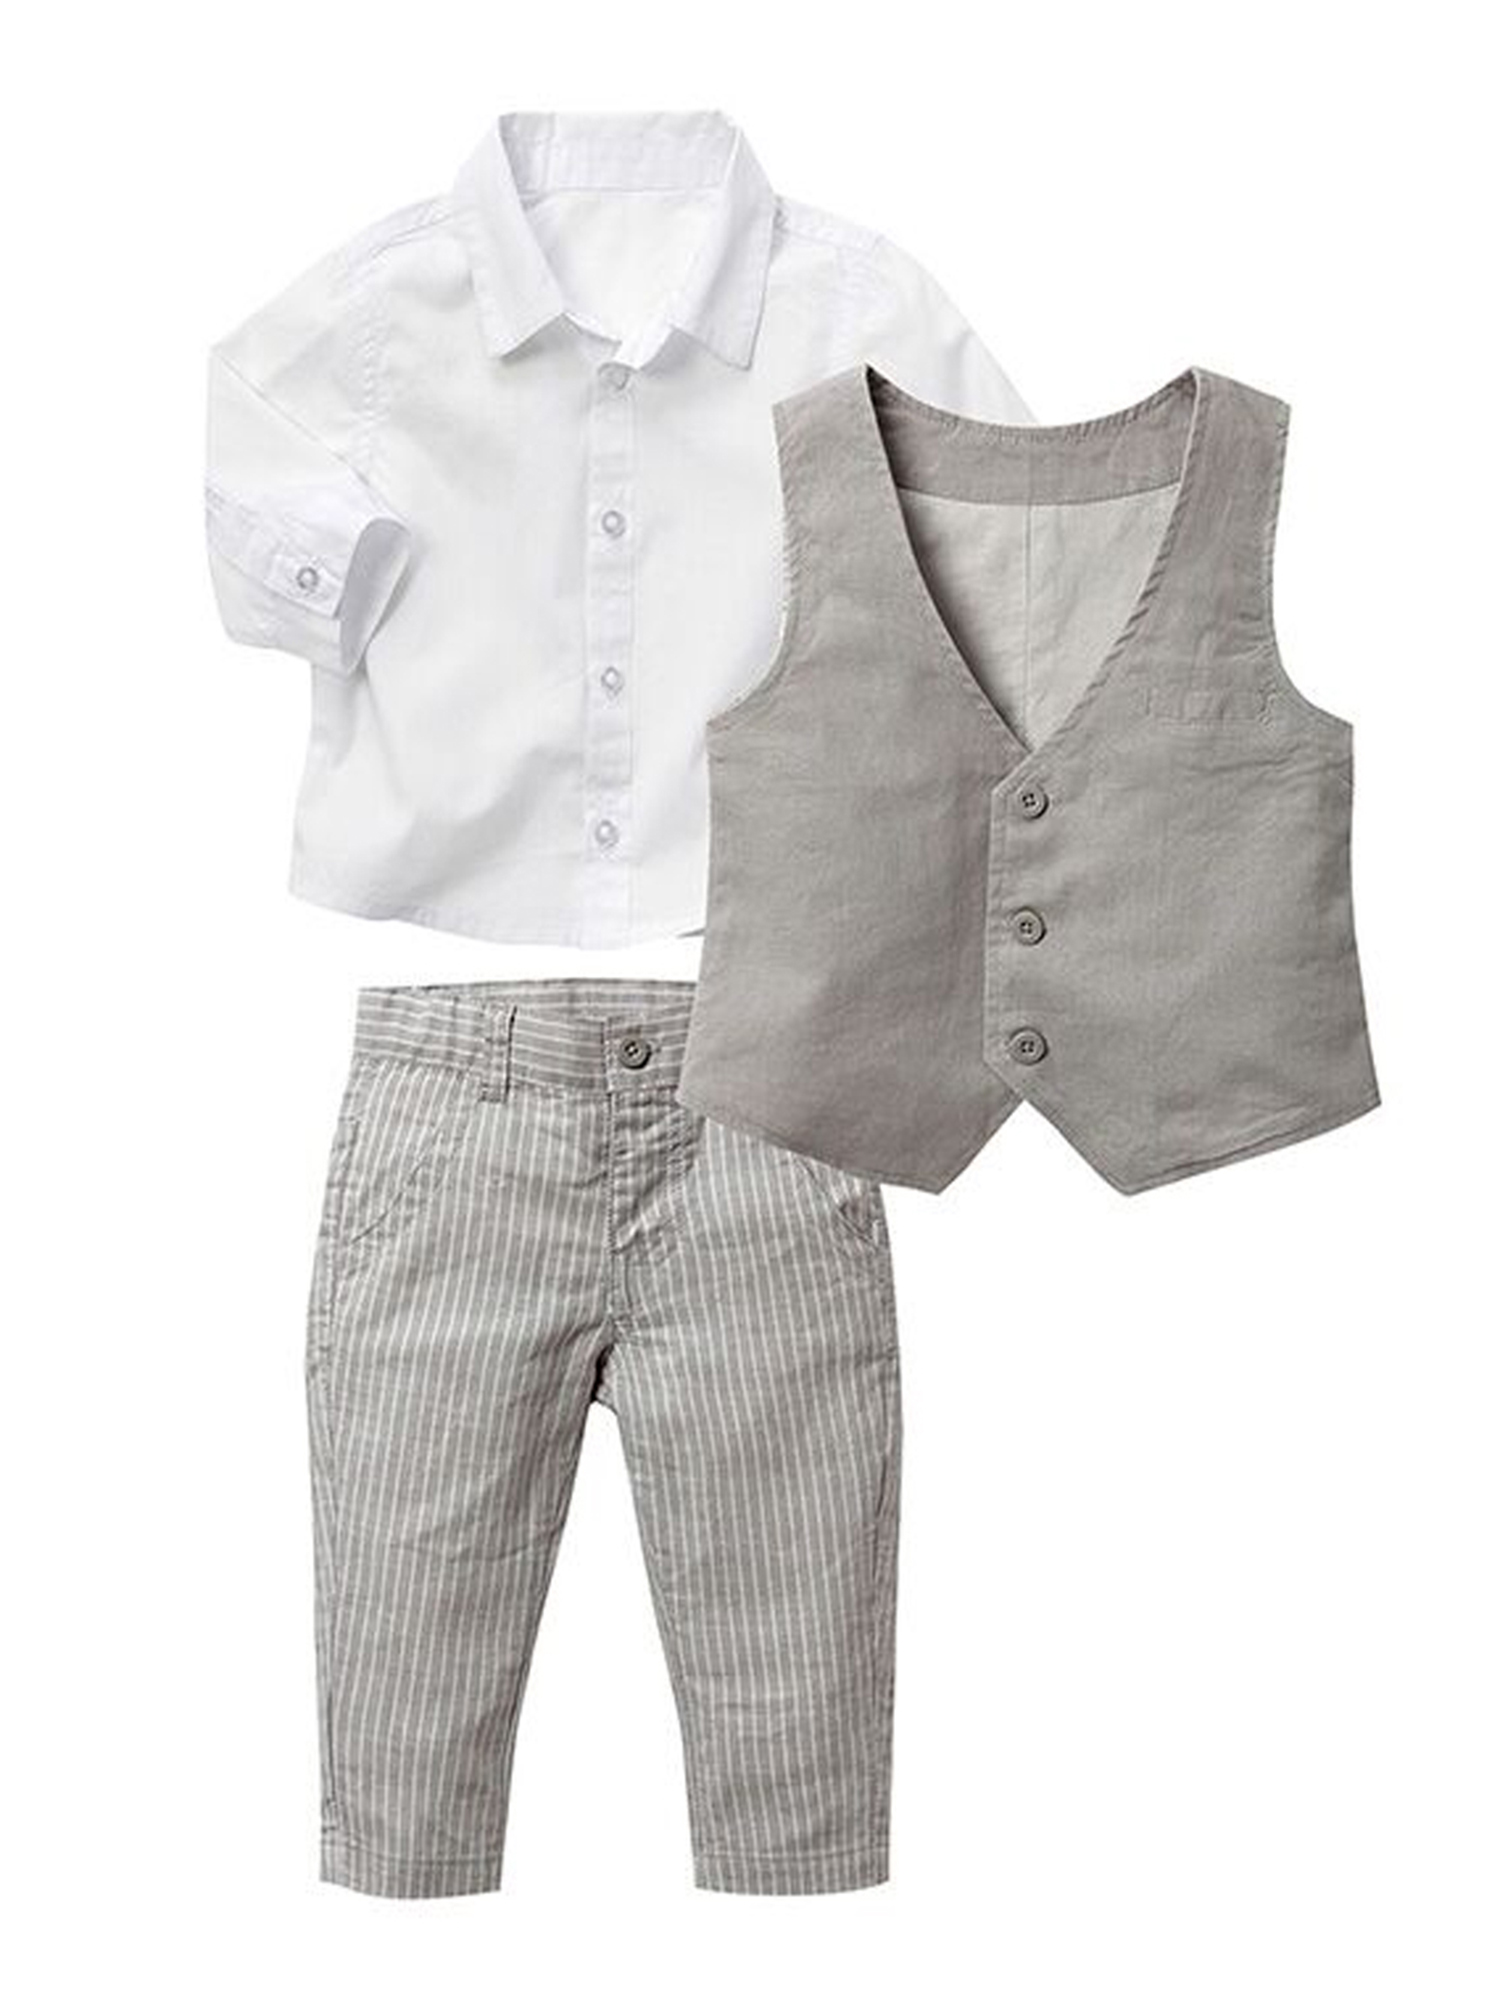 StylesILove Baby Kid Boy Formal Wear Shirt, Vest and Pants 3-pc (2-3 Years)